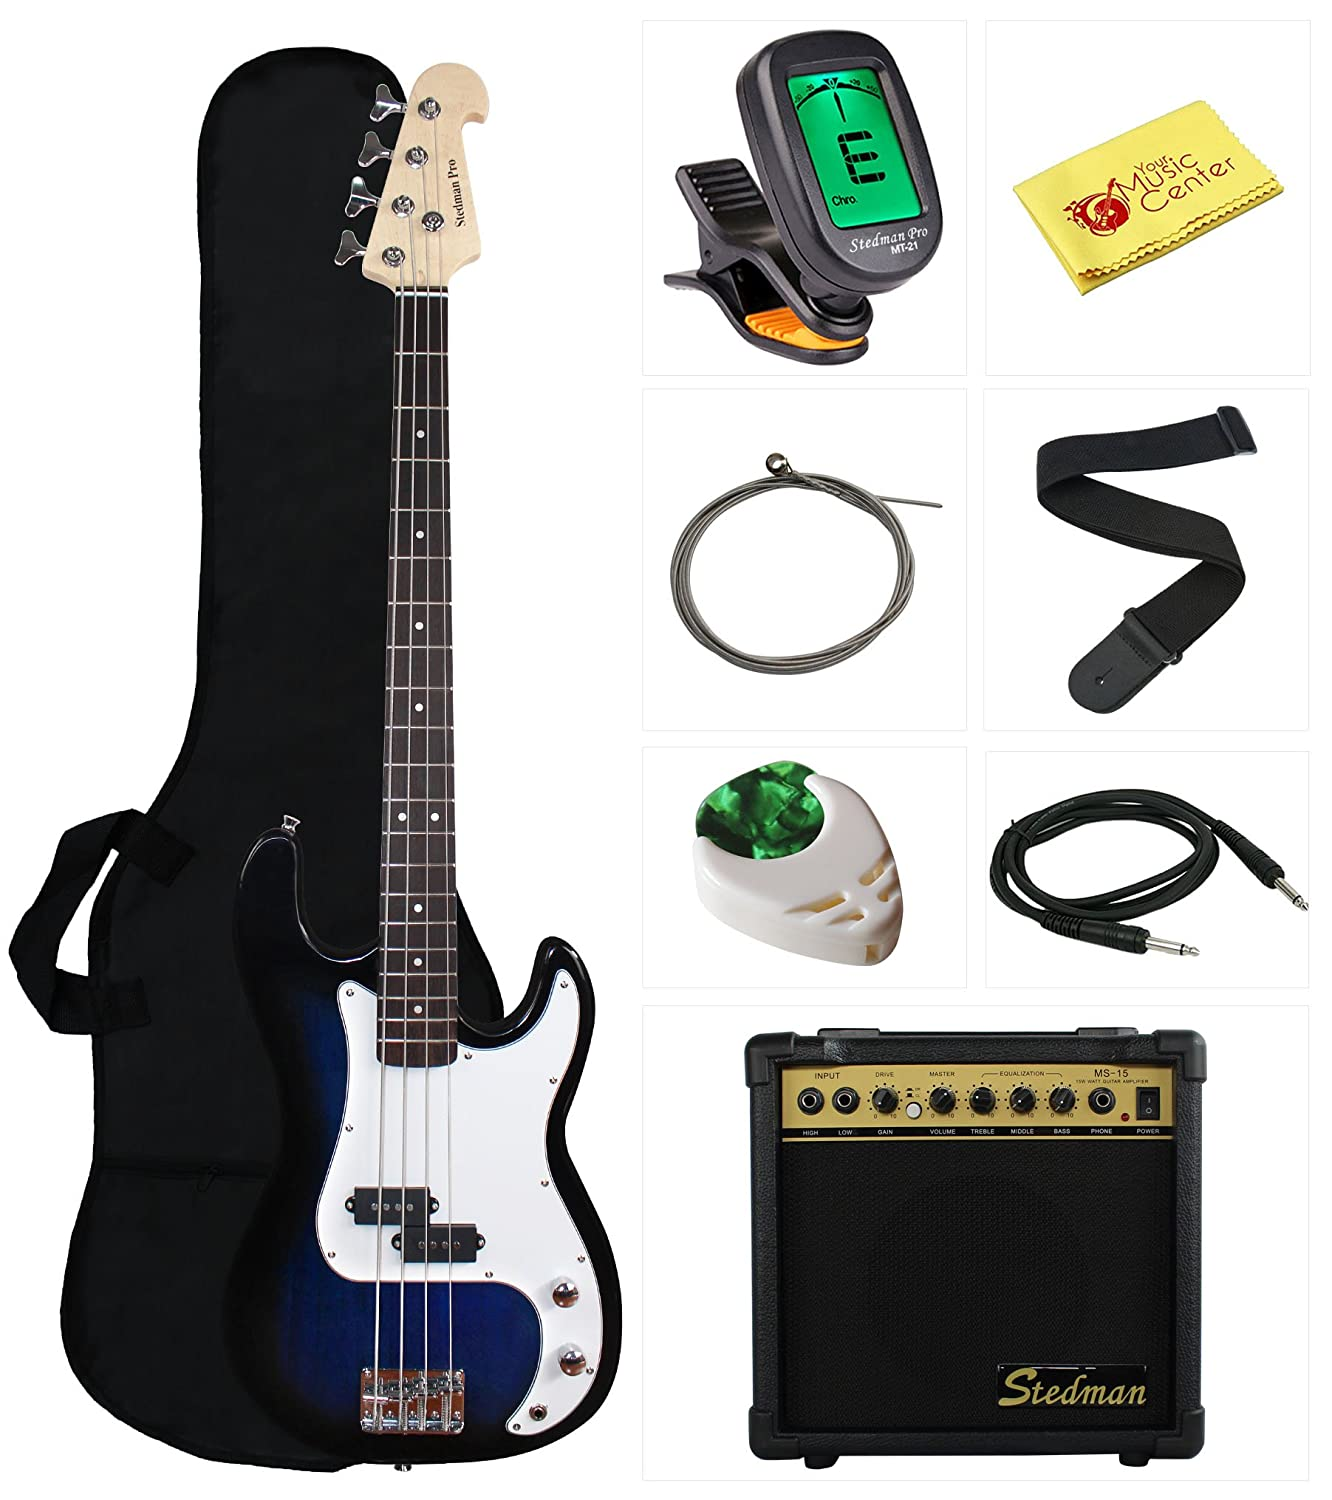 Stedman Beginner Series Bass Guitar Bundle with 15-Watt Amp, Gig Bag, Instrument Cable, Strap, Strings, Picks, and Polishing Cloth - Transparent Blue EB46-TBU-15W